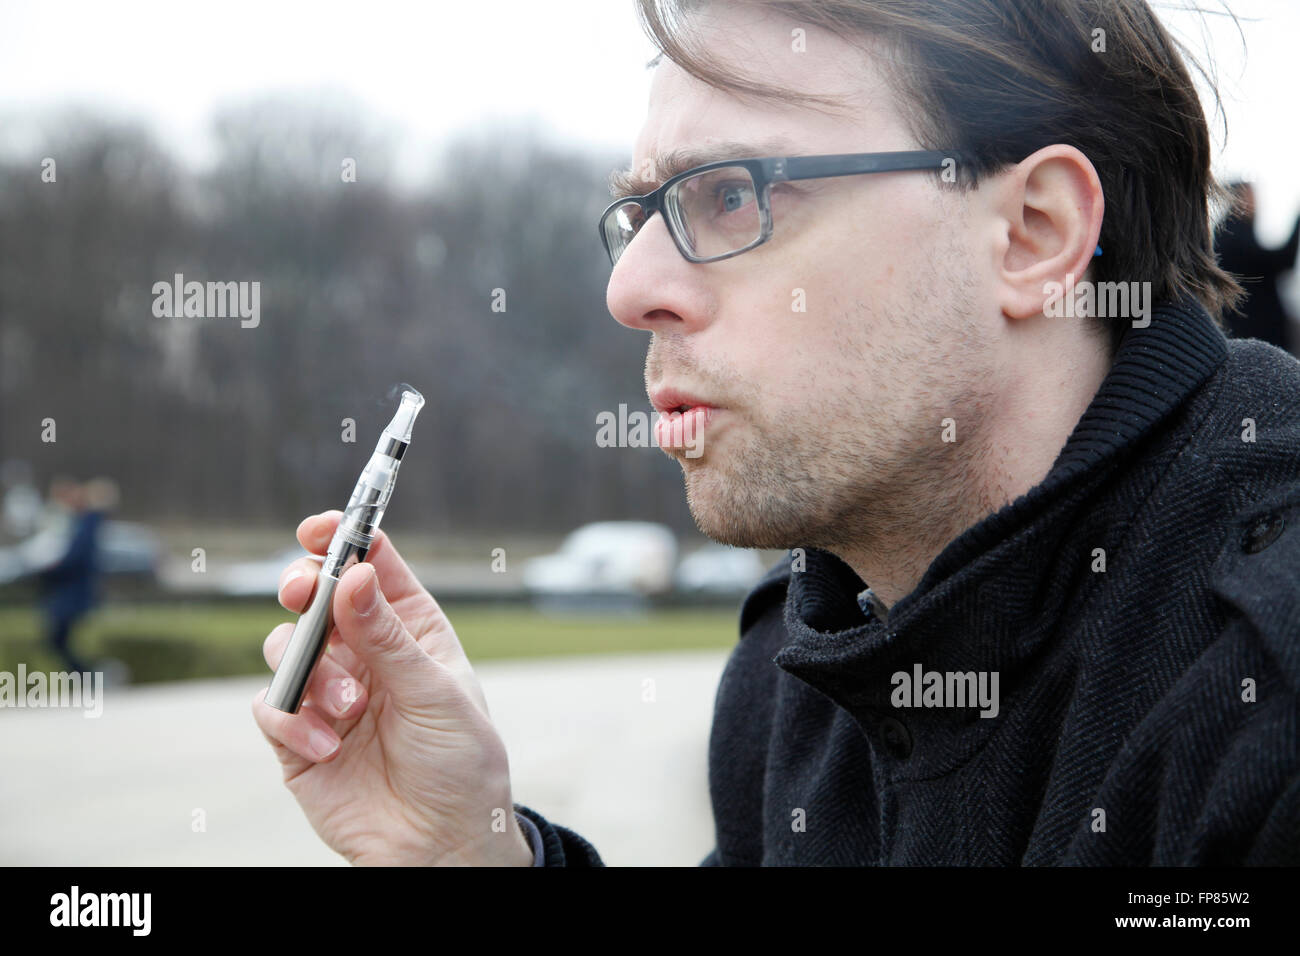 Young man with e-cigarette - Stock Image